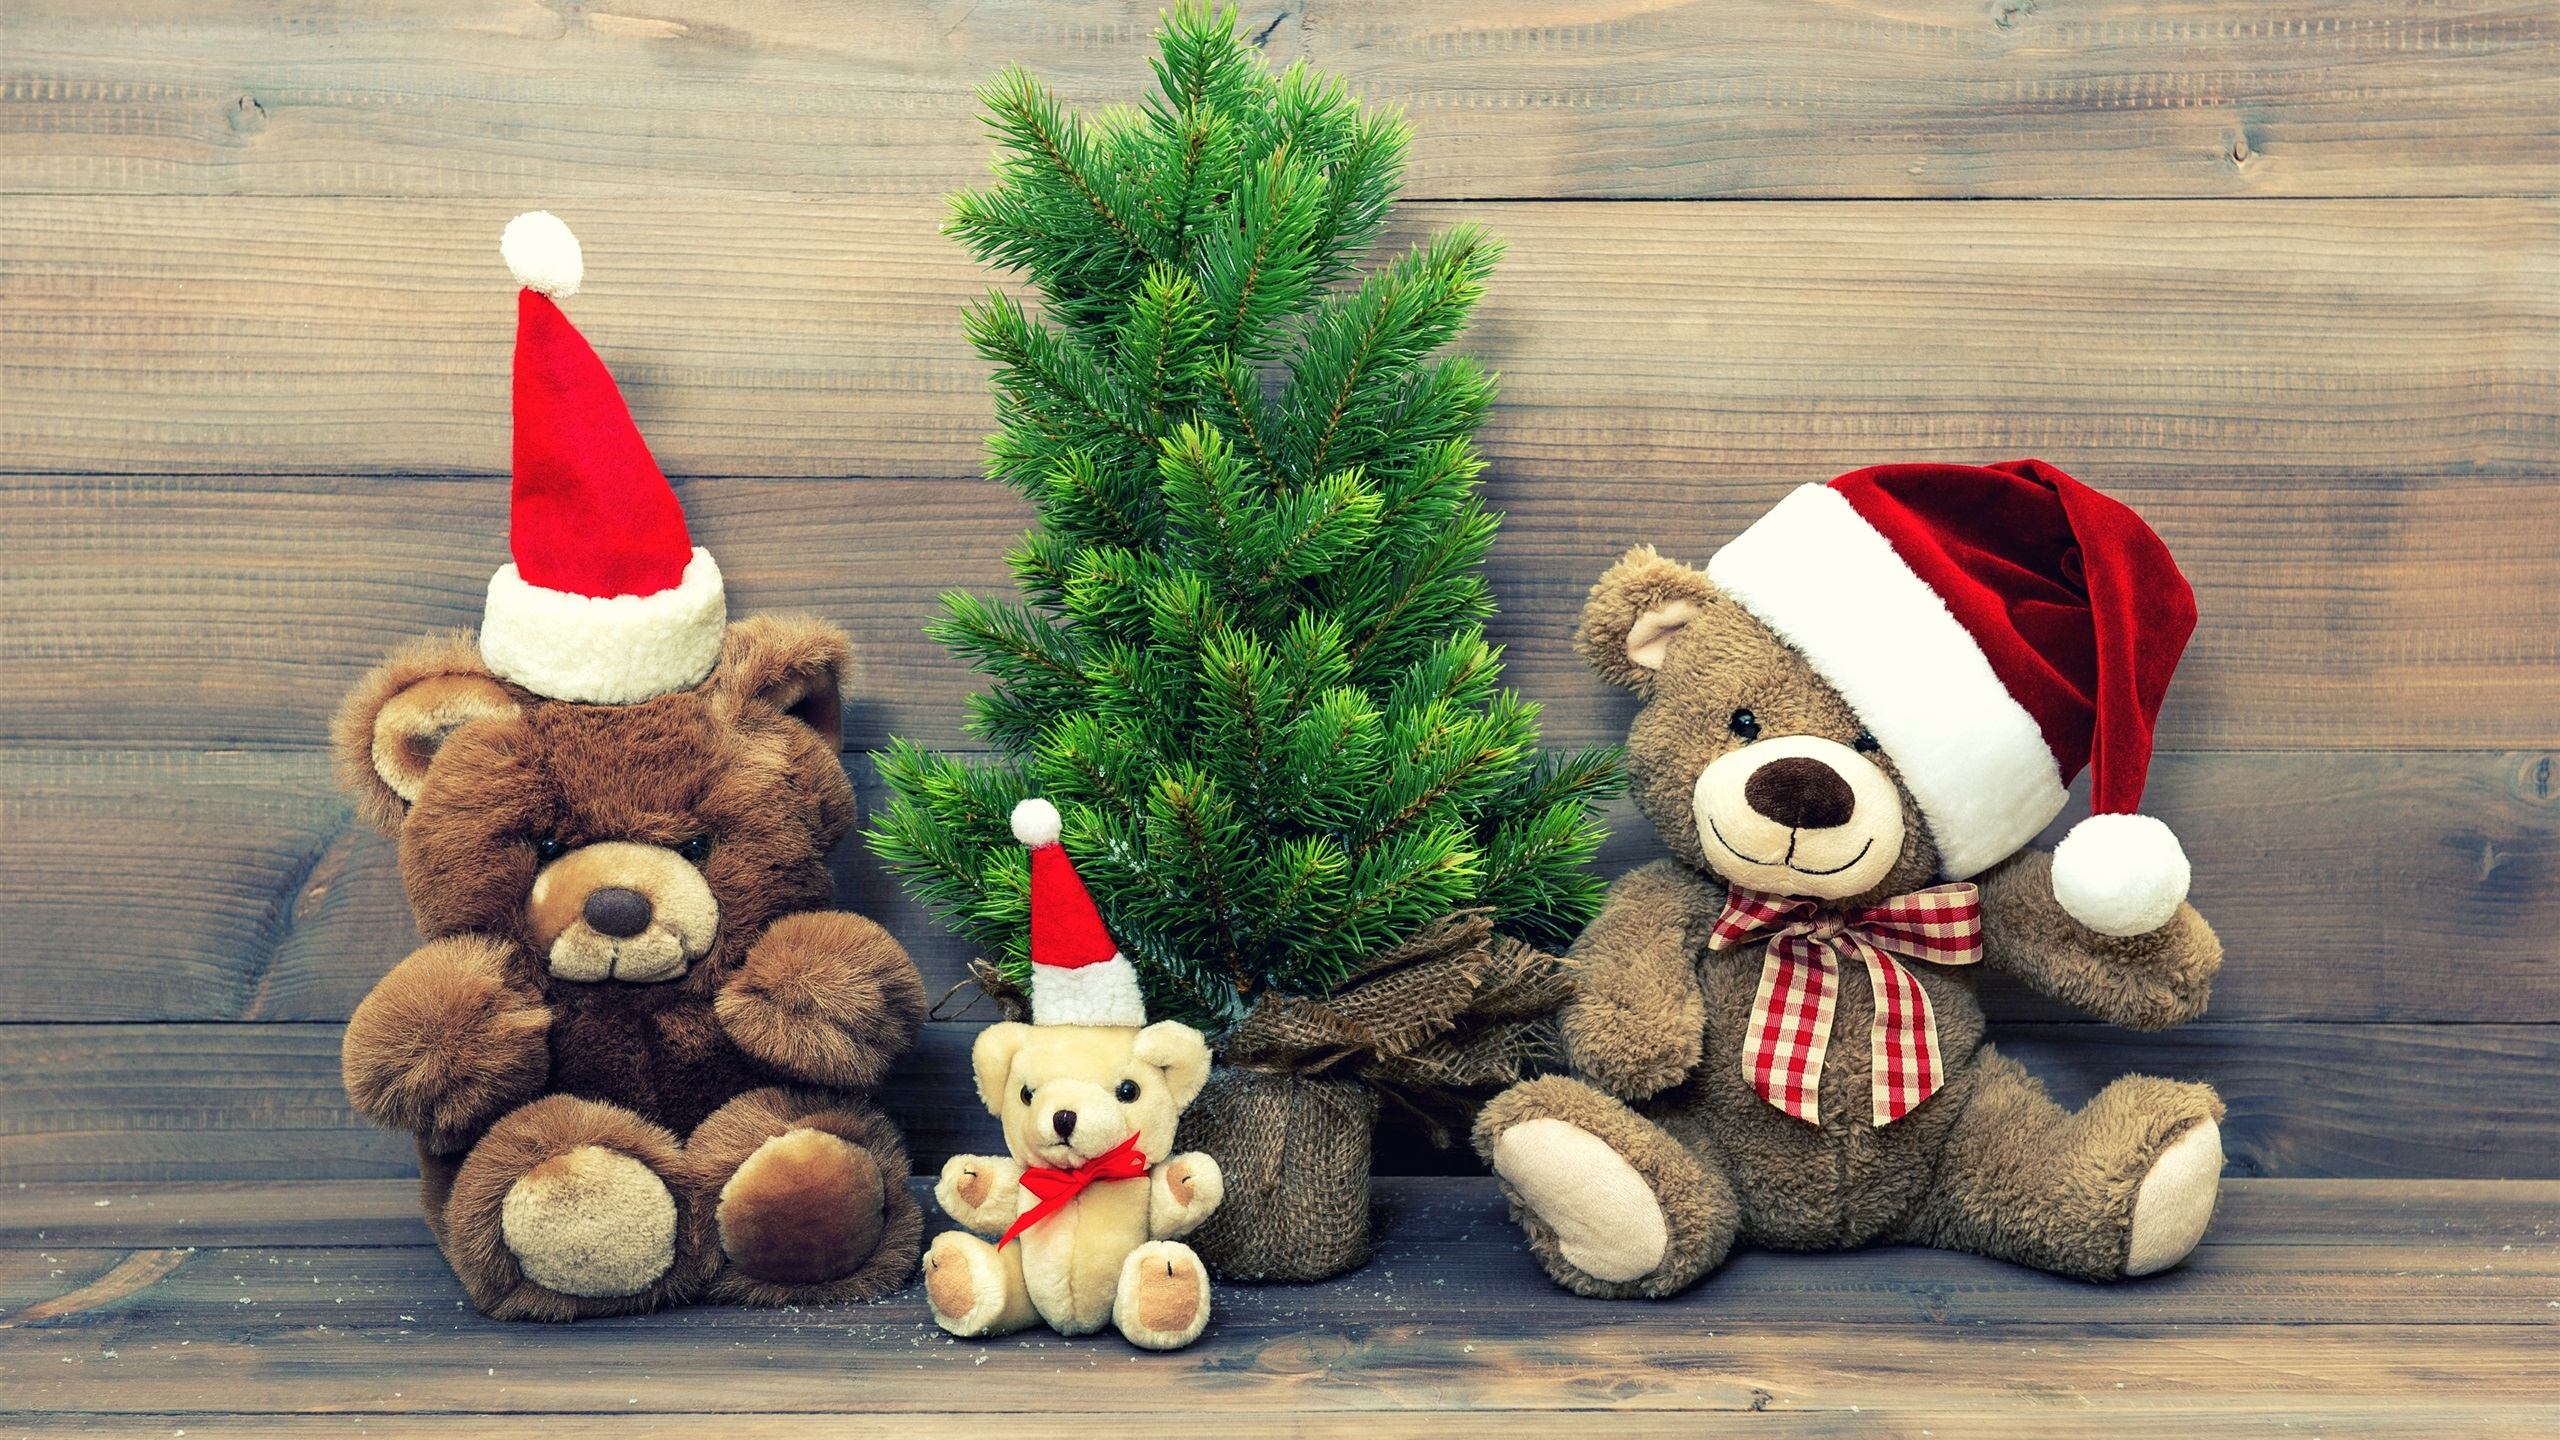 Wallpaper Merry Christmas Hat Decoration Teddy Bear 2560x1440 Qhd Picture Image